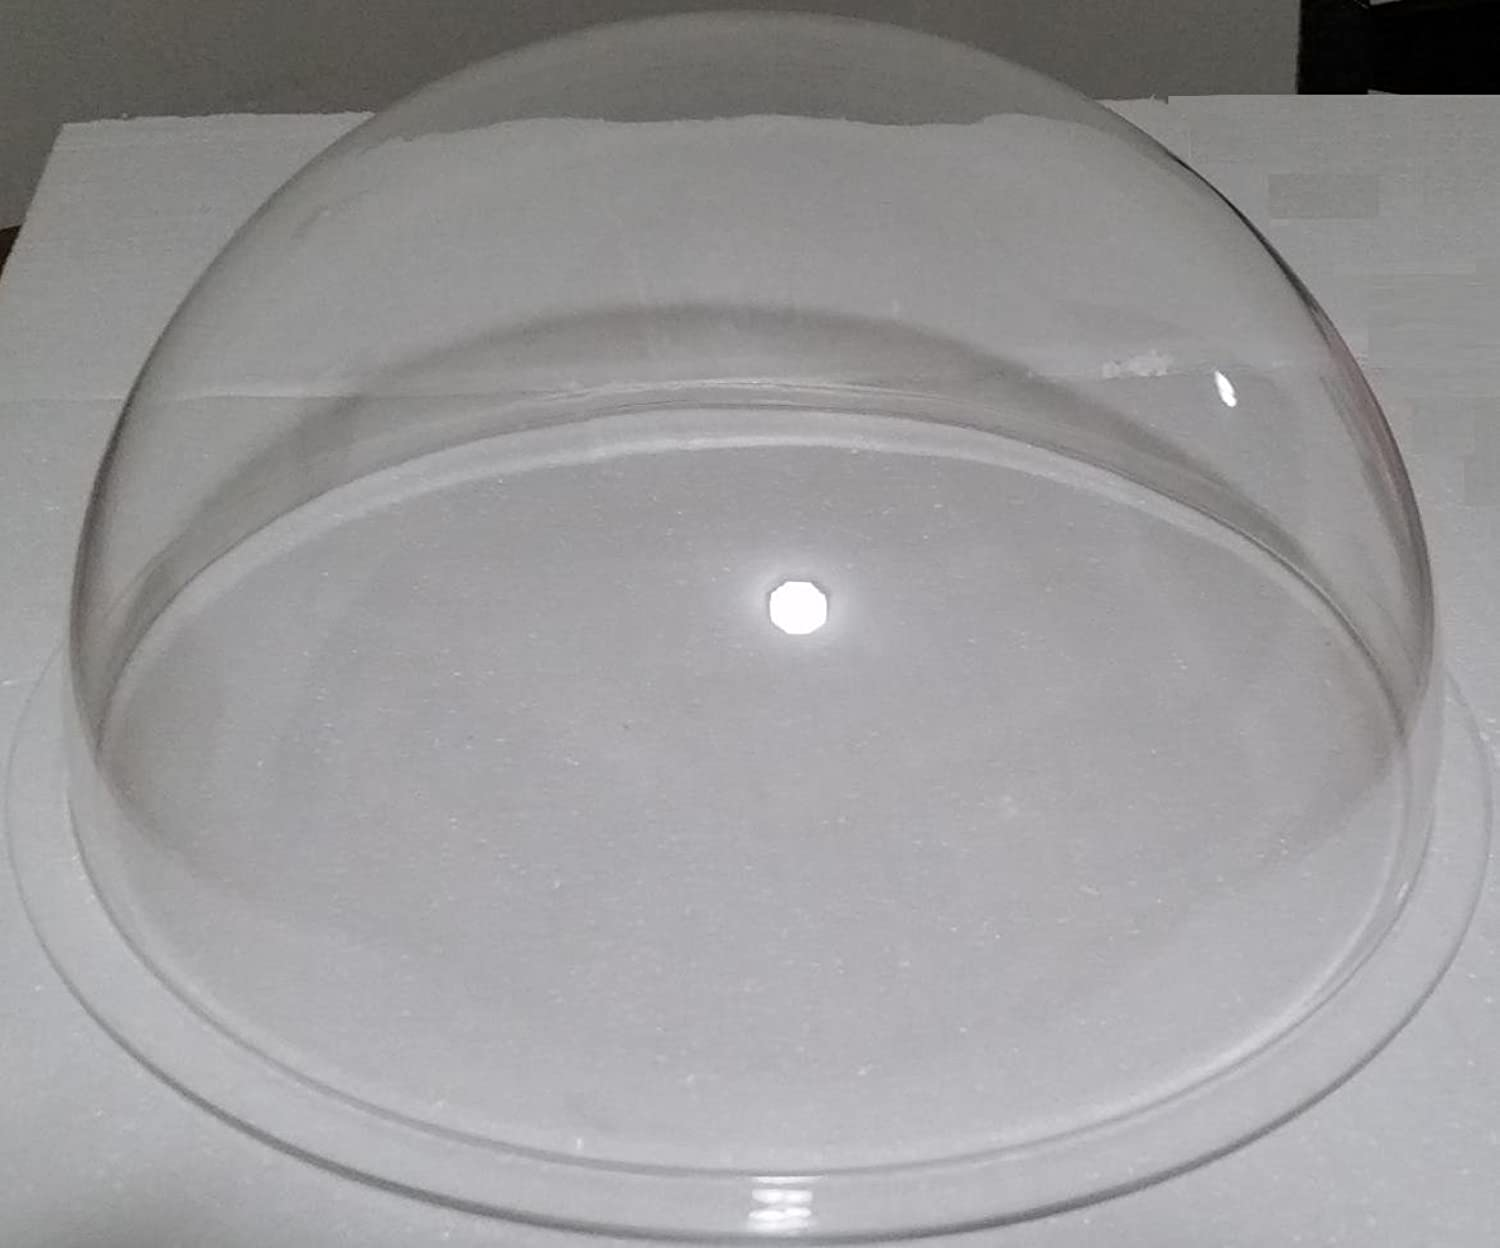 Acrylic Dome Plastic Hemisphere  Clear  15  Diameter, 3 4  Flange with No PreDrilled Holes